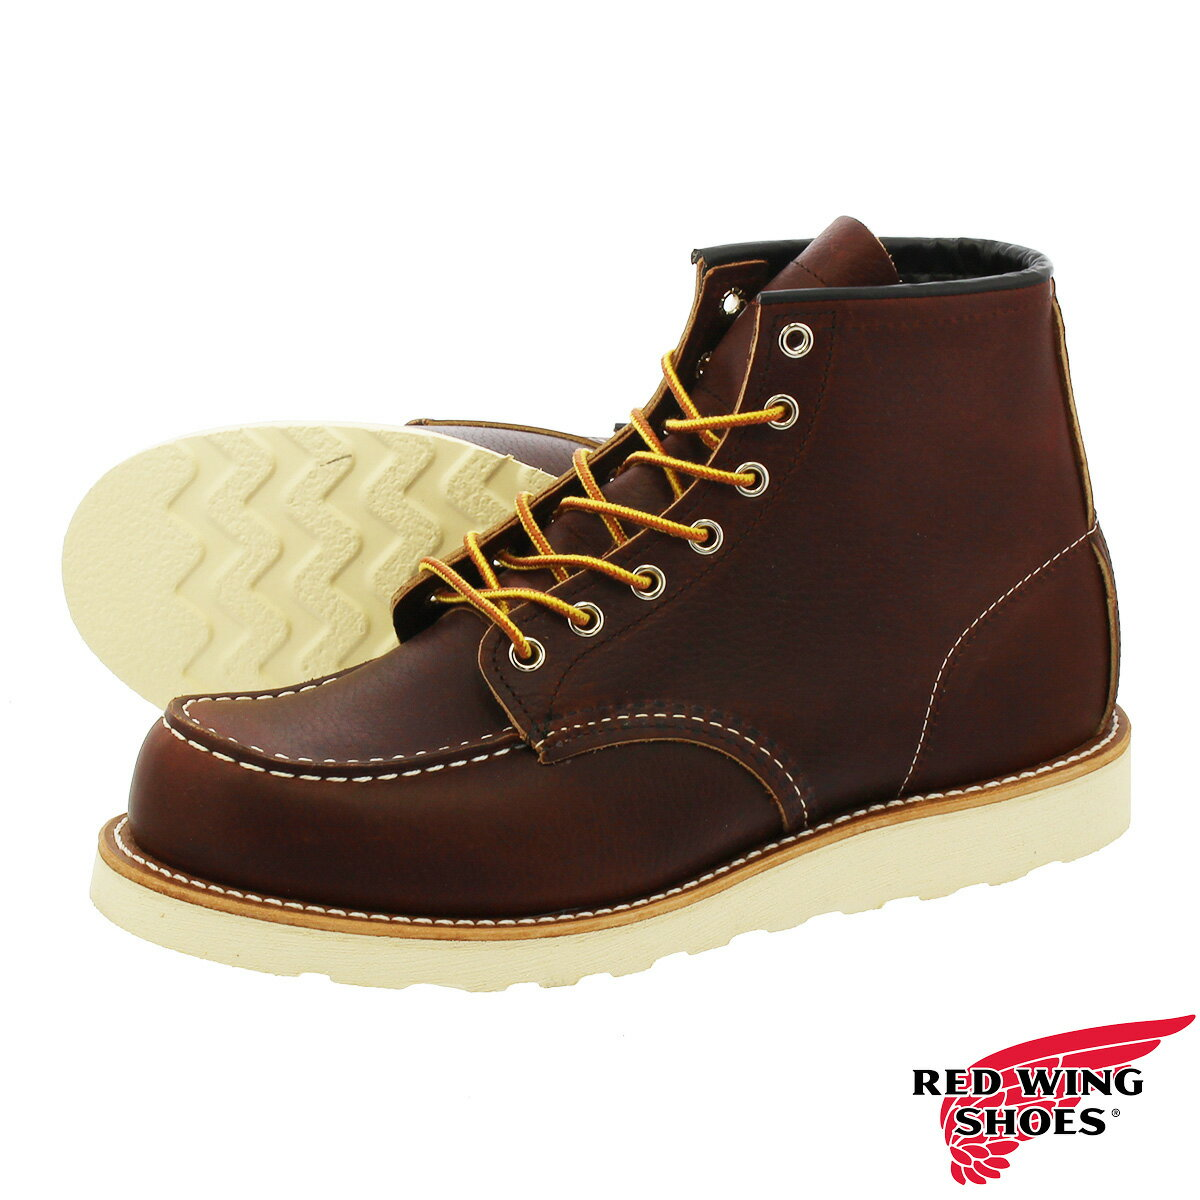 RED WING 8138 IRISH SETT...の商品画像